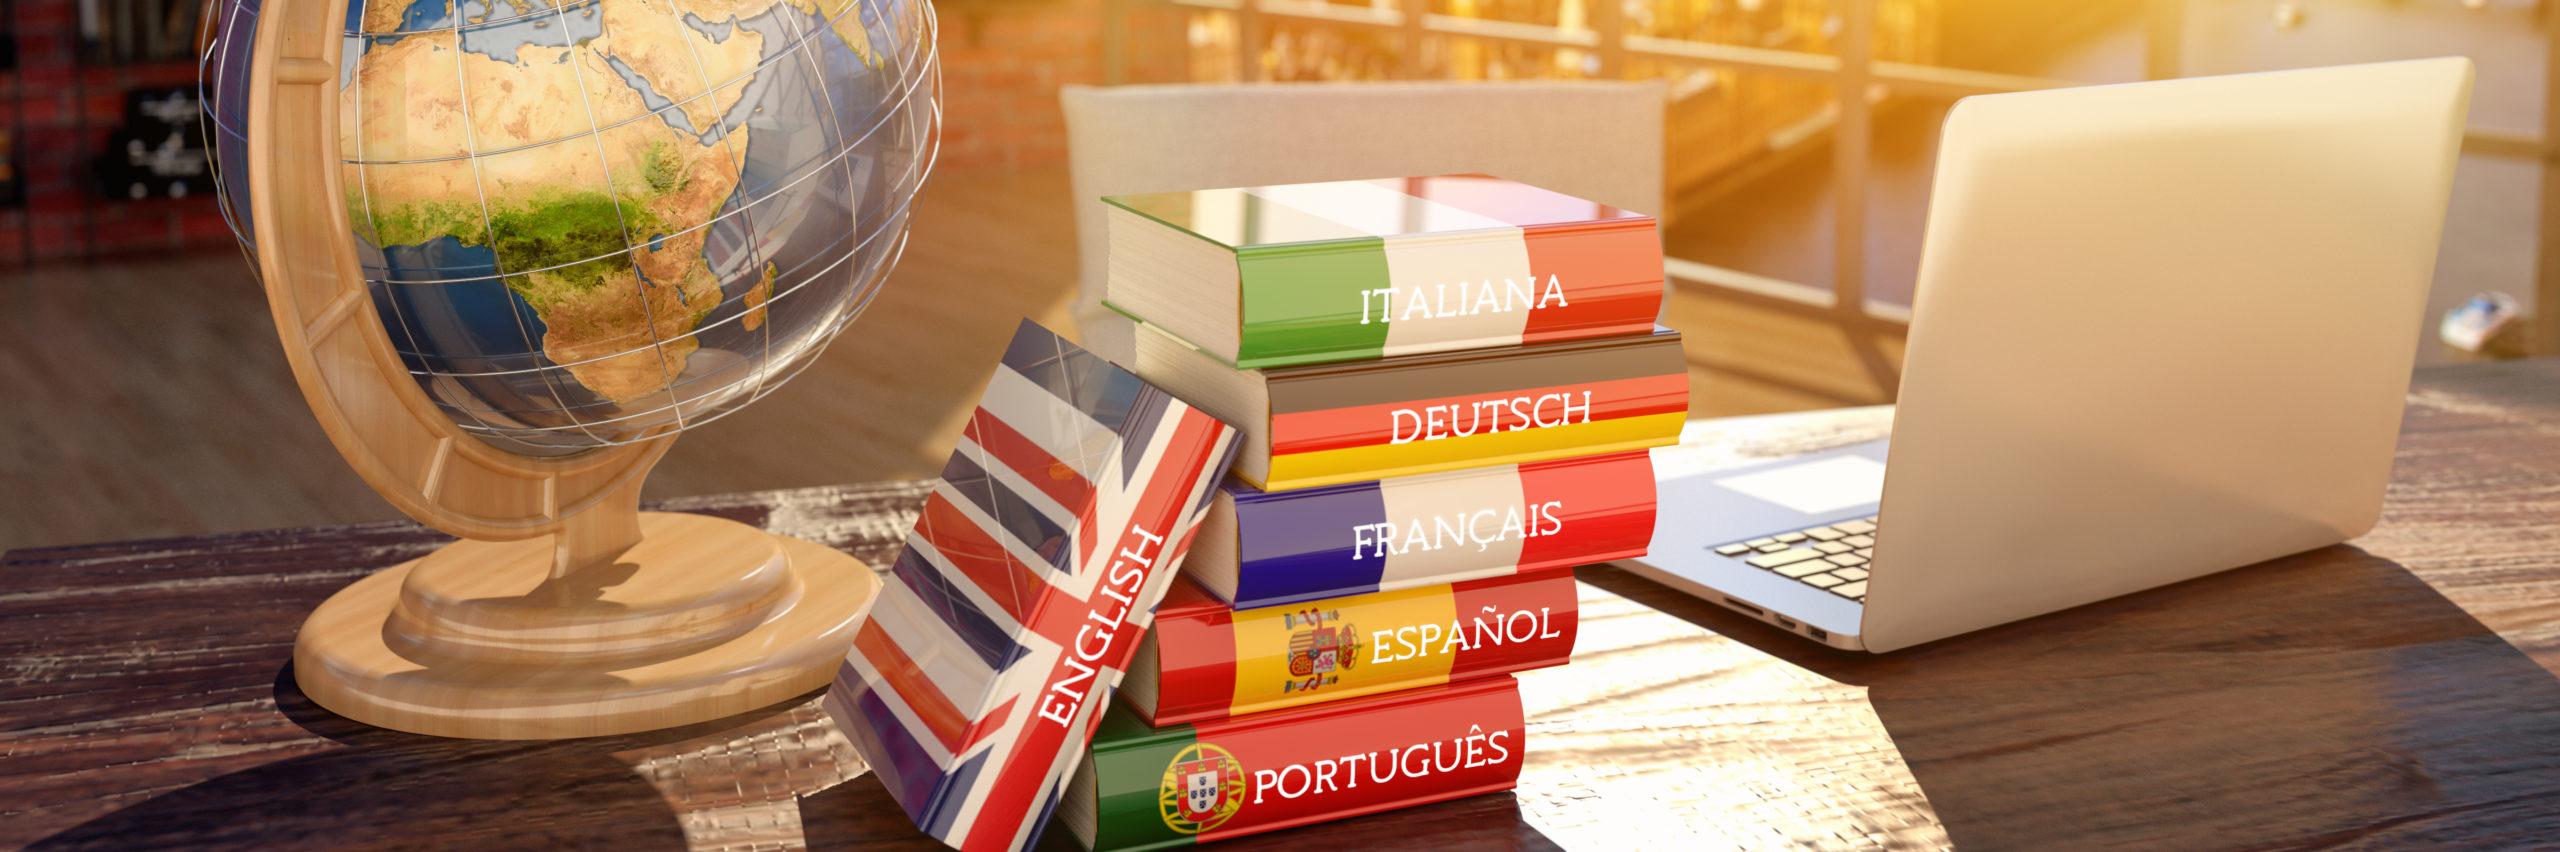 Languages learning and translate, communication and travel concept, books with covers in colors of flags of Europe countries, laptop and globe on a table in a modern interior, 3d illustration - Illustration